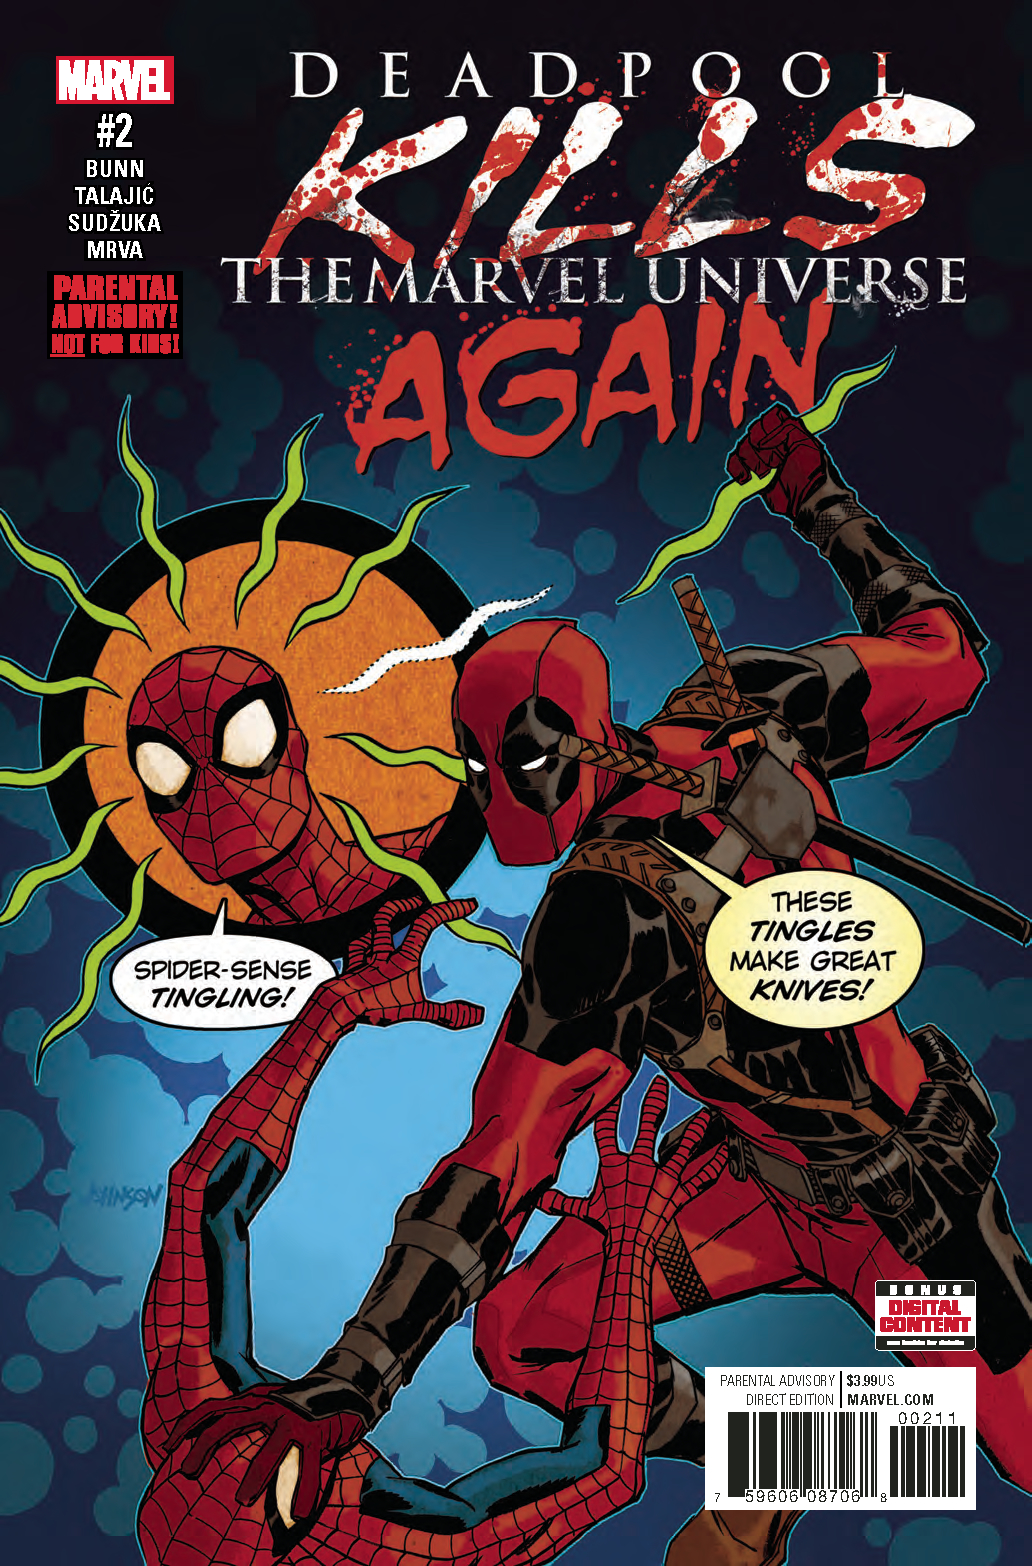 DEADPOOL KILLS MARVEL UNIVERSE AGAIN #2 (OF 5)